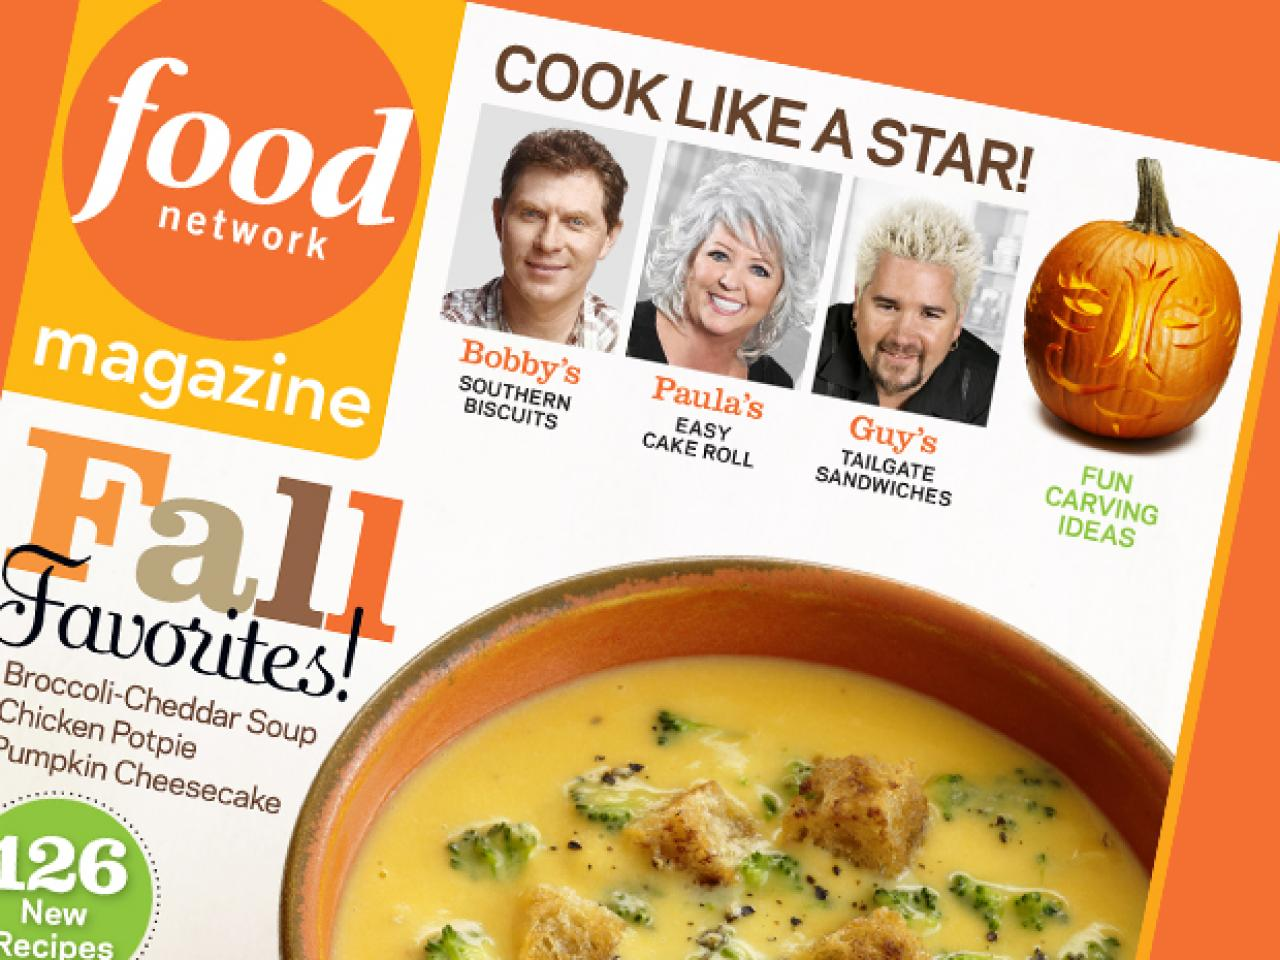 food network magazine october 2011 recipe index recipes and